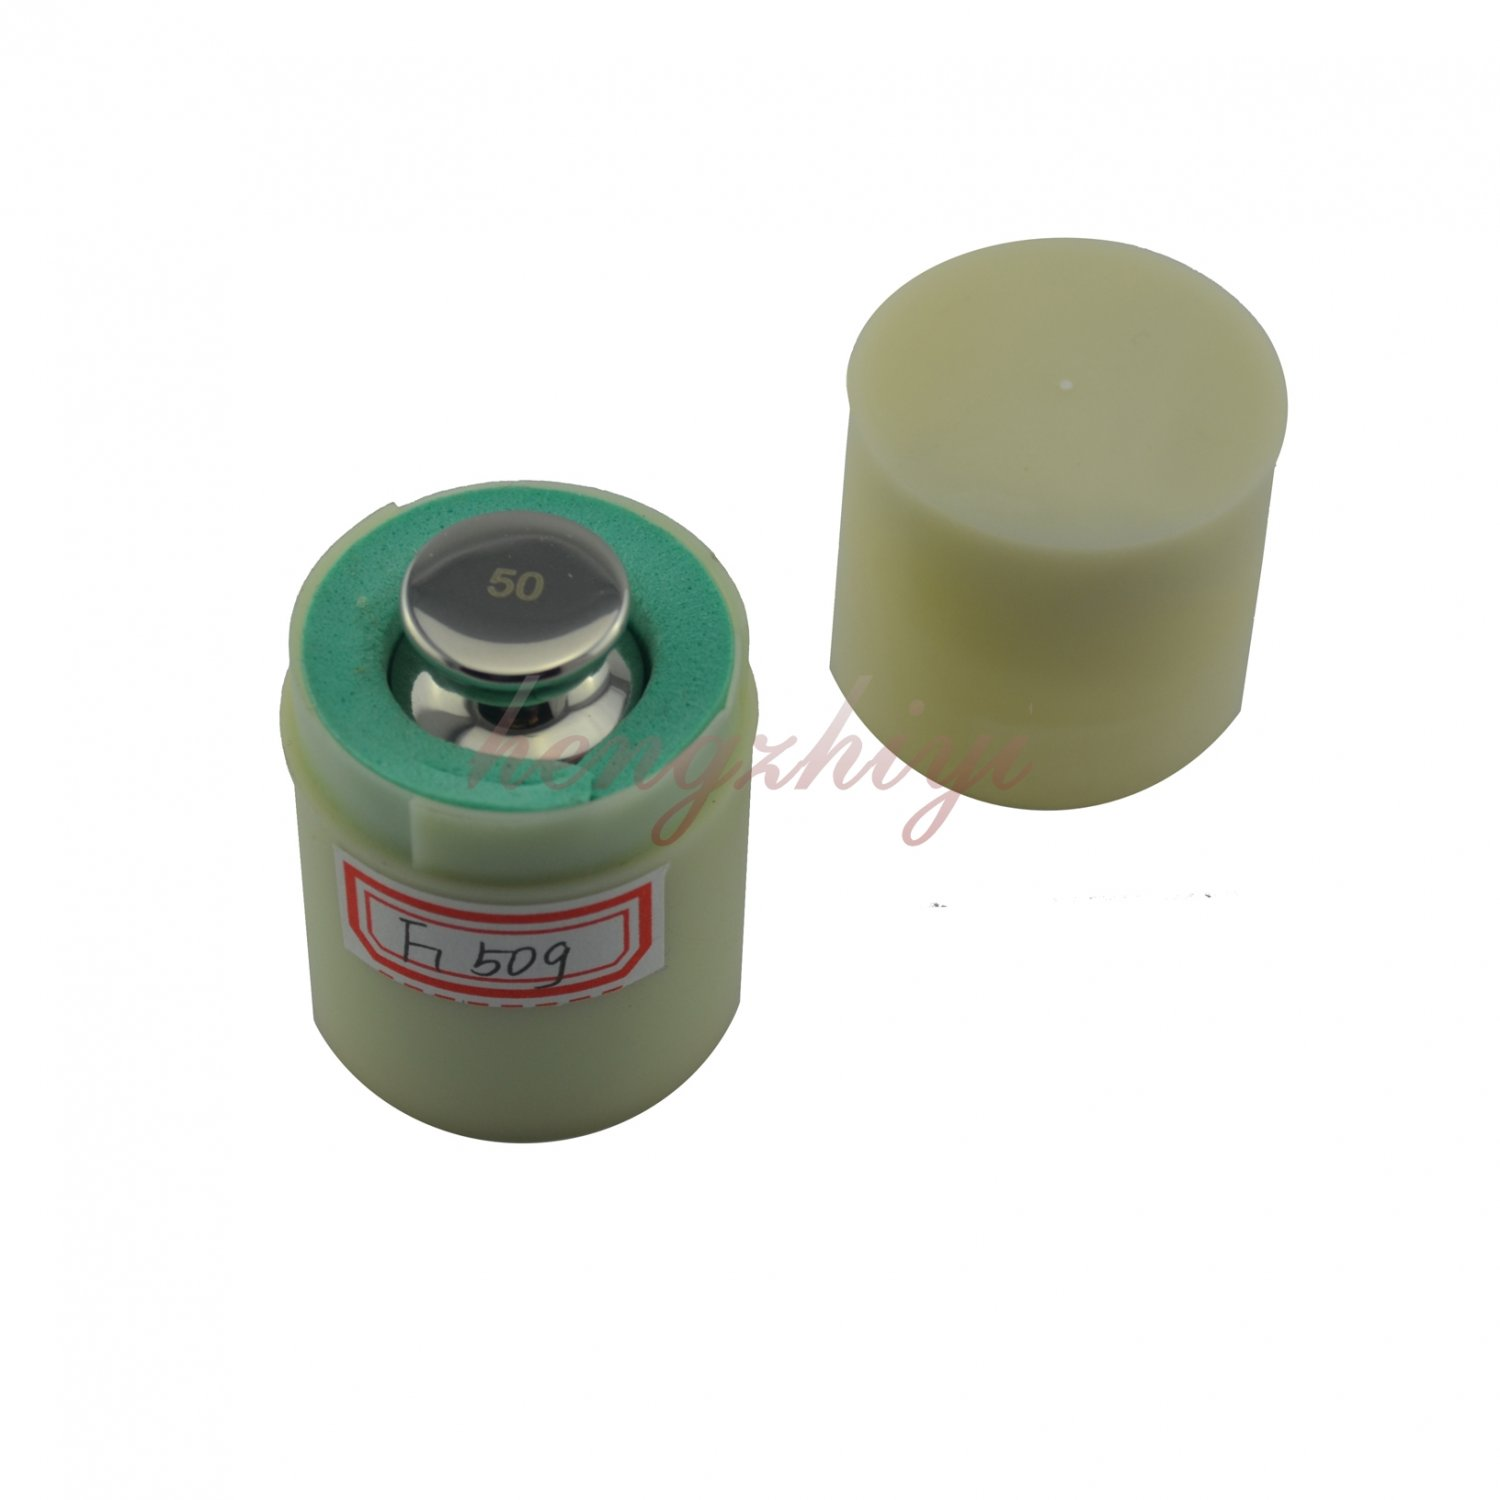 F1 Grade 50G 304 Stainless Steel Calibration Weight w Certificate Balance Weight, Free Shipping